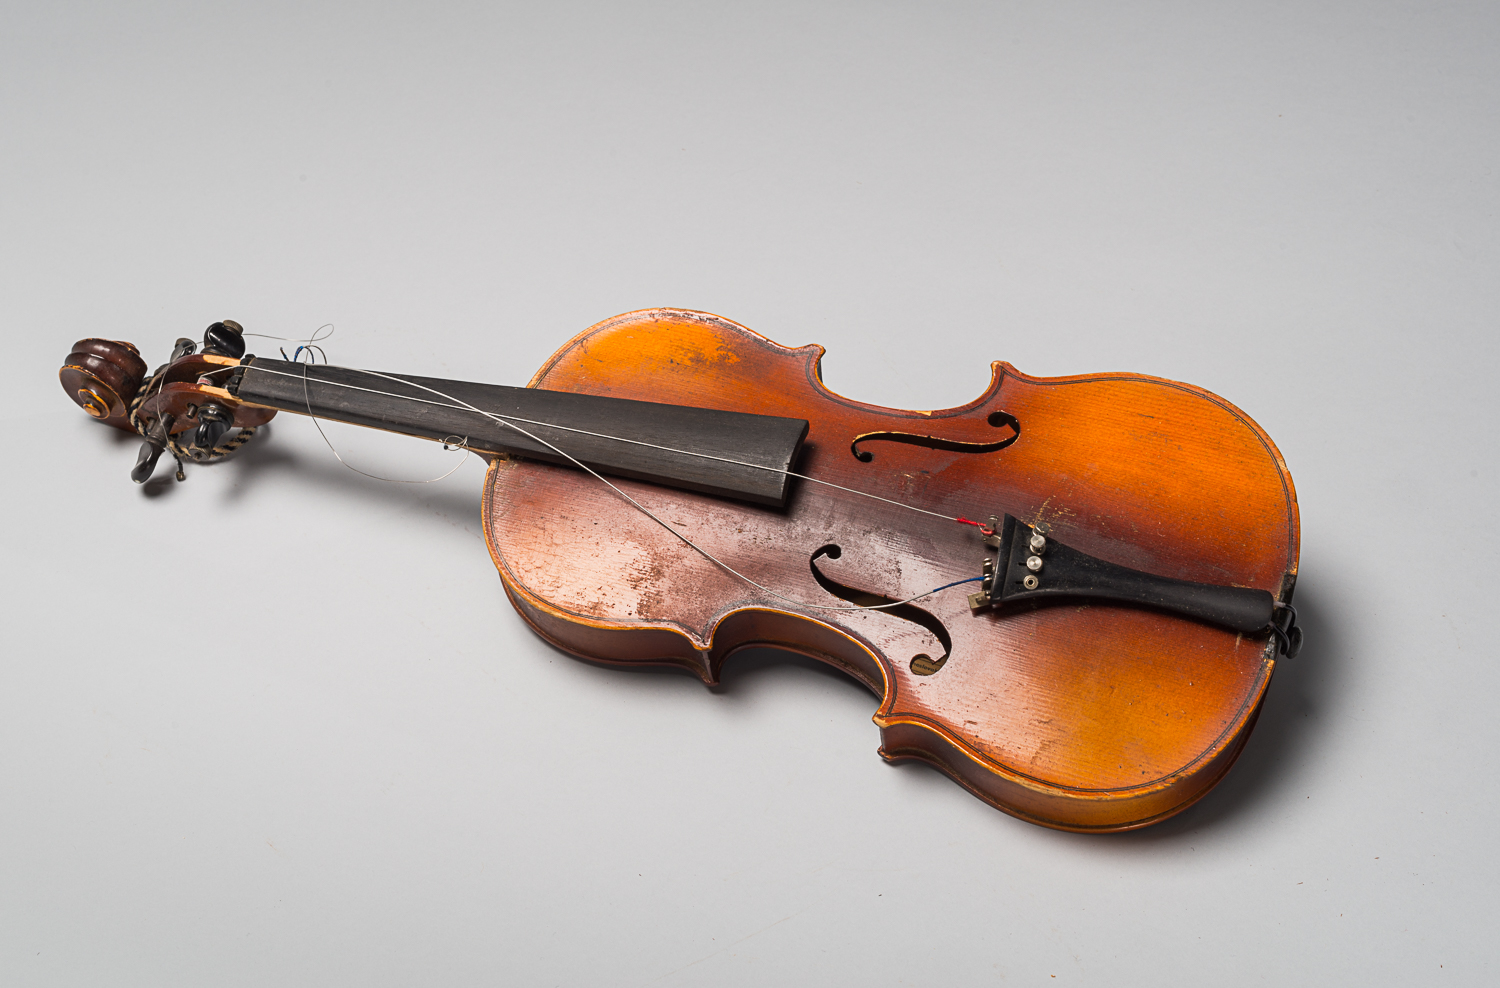 Le violon d'Alexander Izso (Photo : Peter Berra)